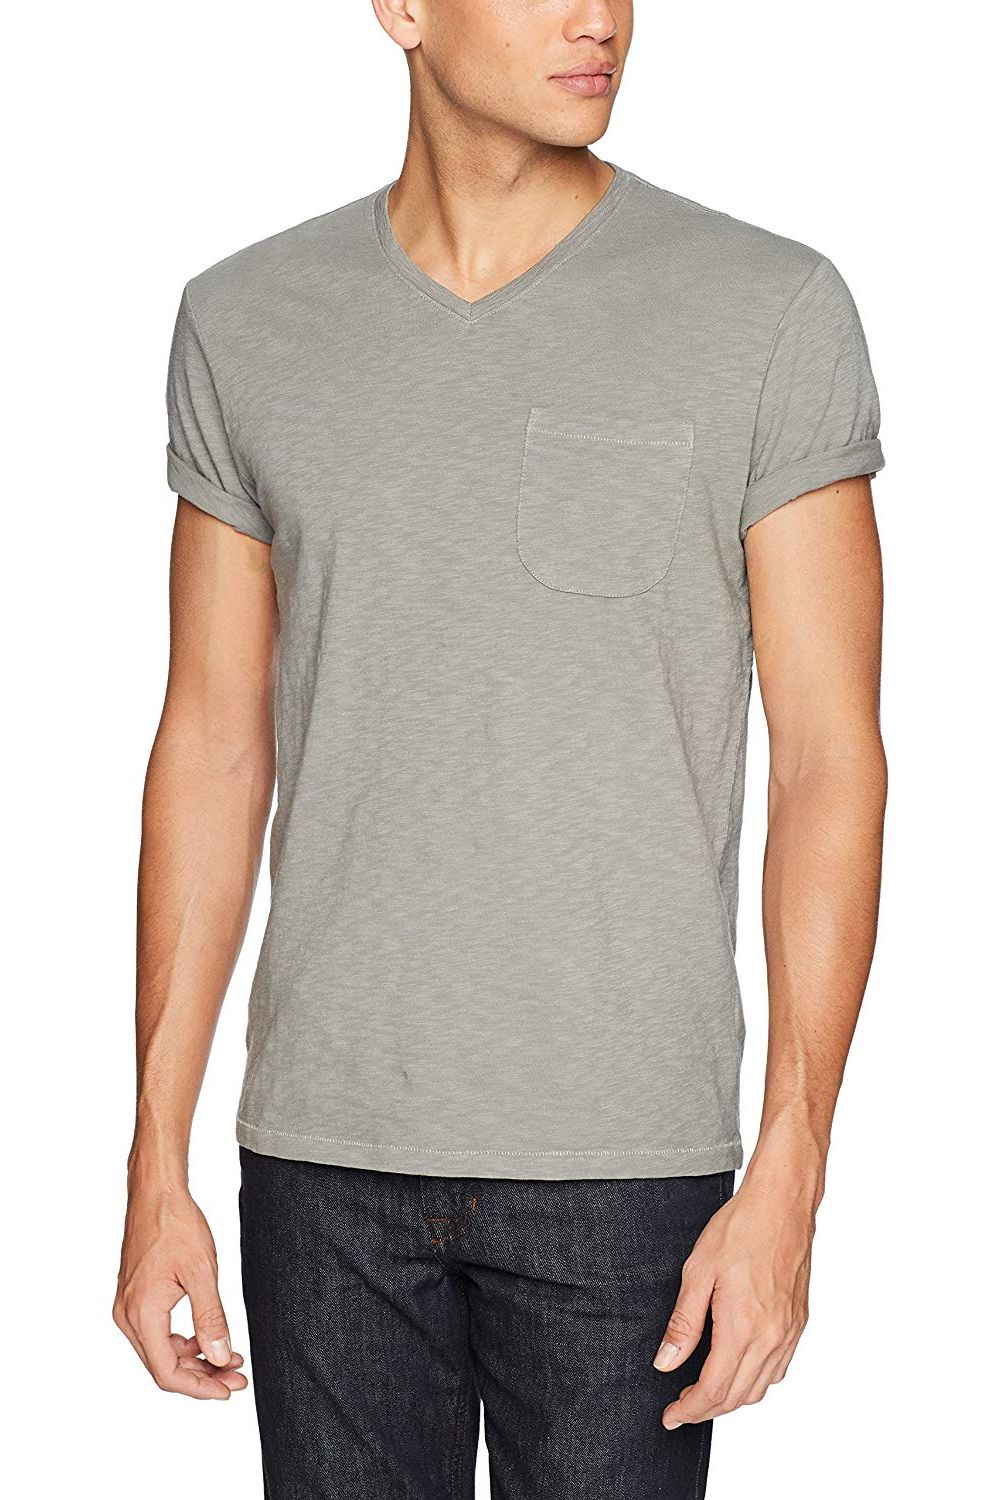 f1877b33 Amazon Brand - Goodthreads Men's Lightweight Slub V-Neck Pocket T-Shirt at  Amazon